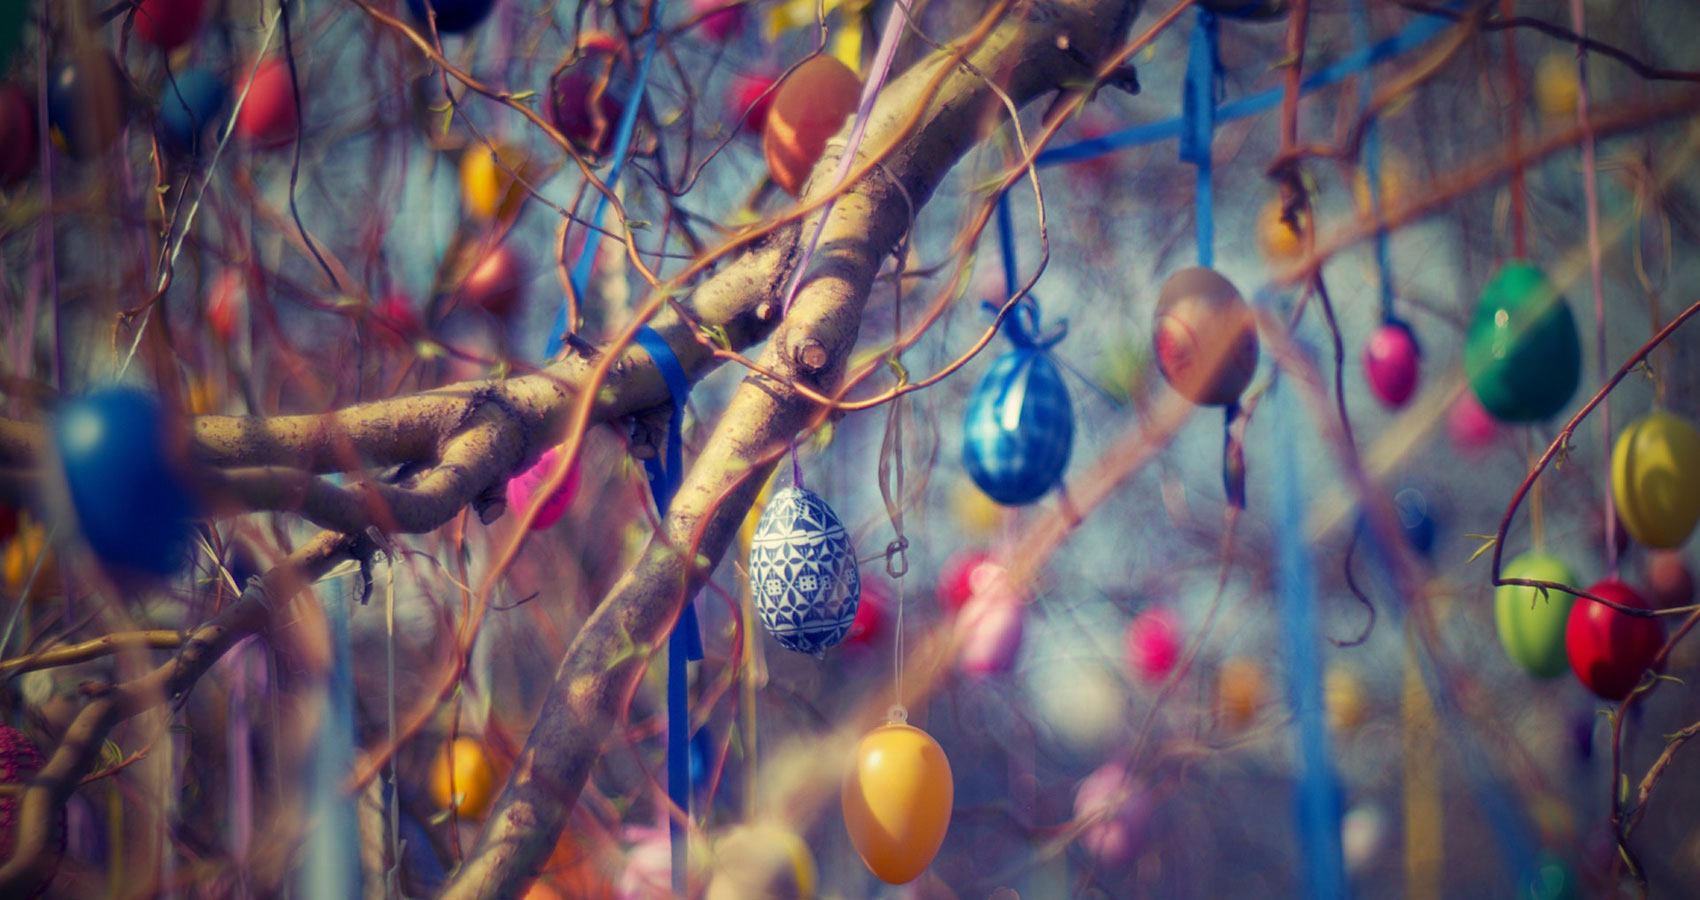 The Easter Egg Hunt by Roger Turner at Spillwords.com